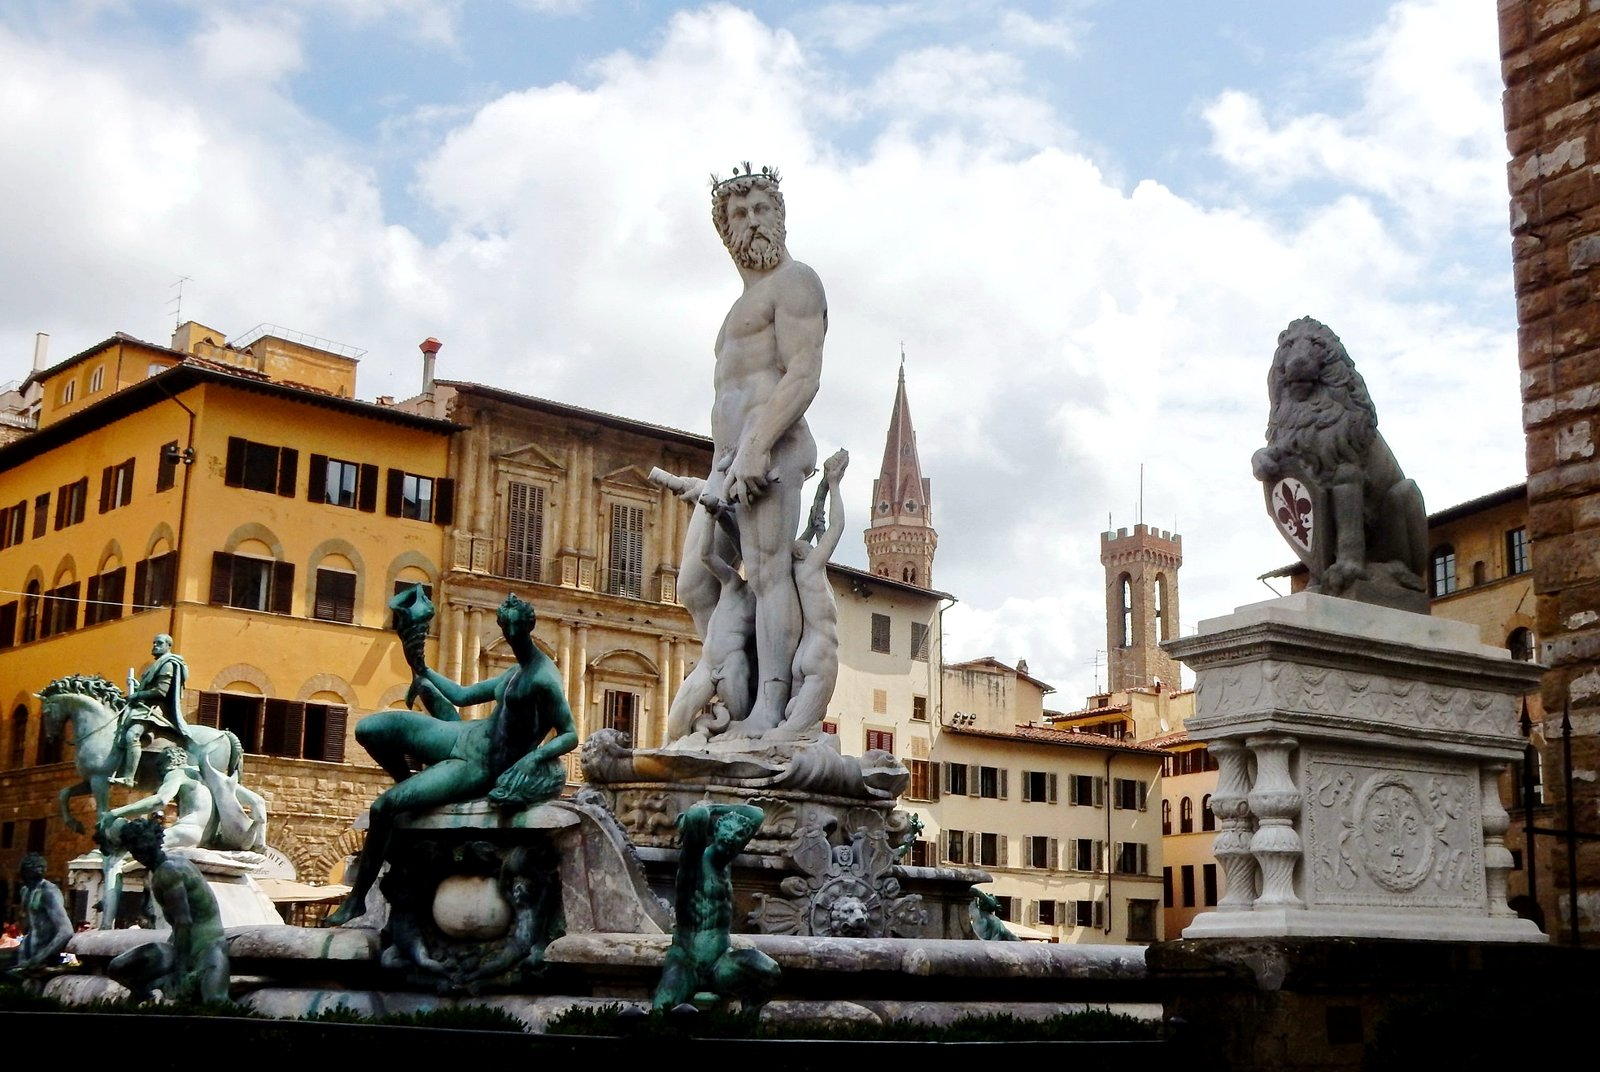 How to admire the sculpture on Piazza della Signoria in Florence